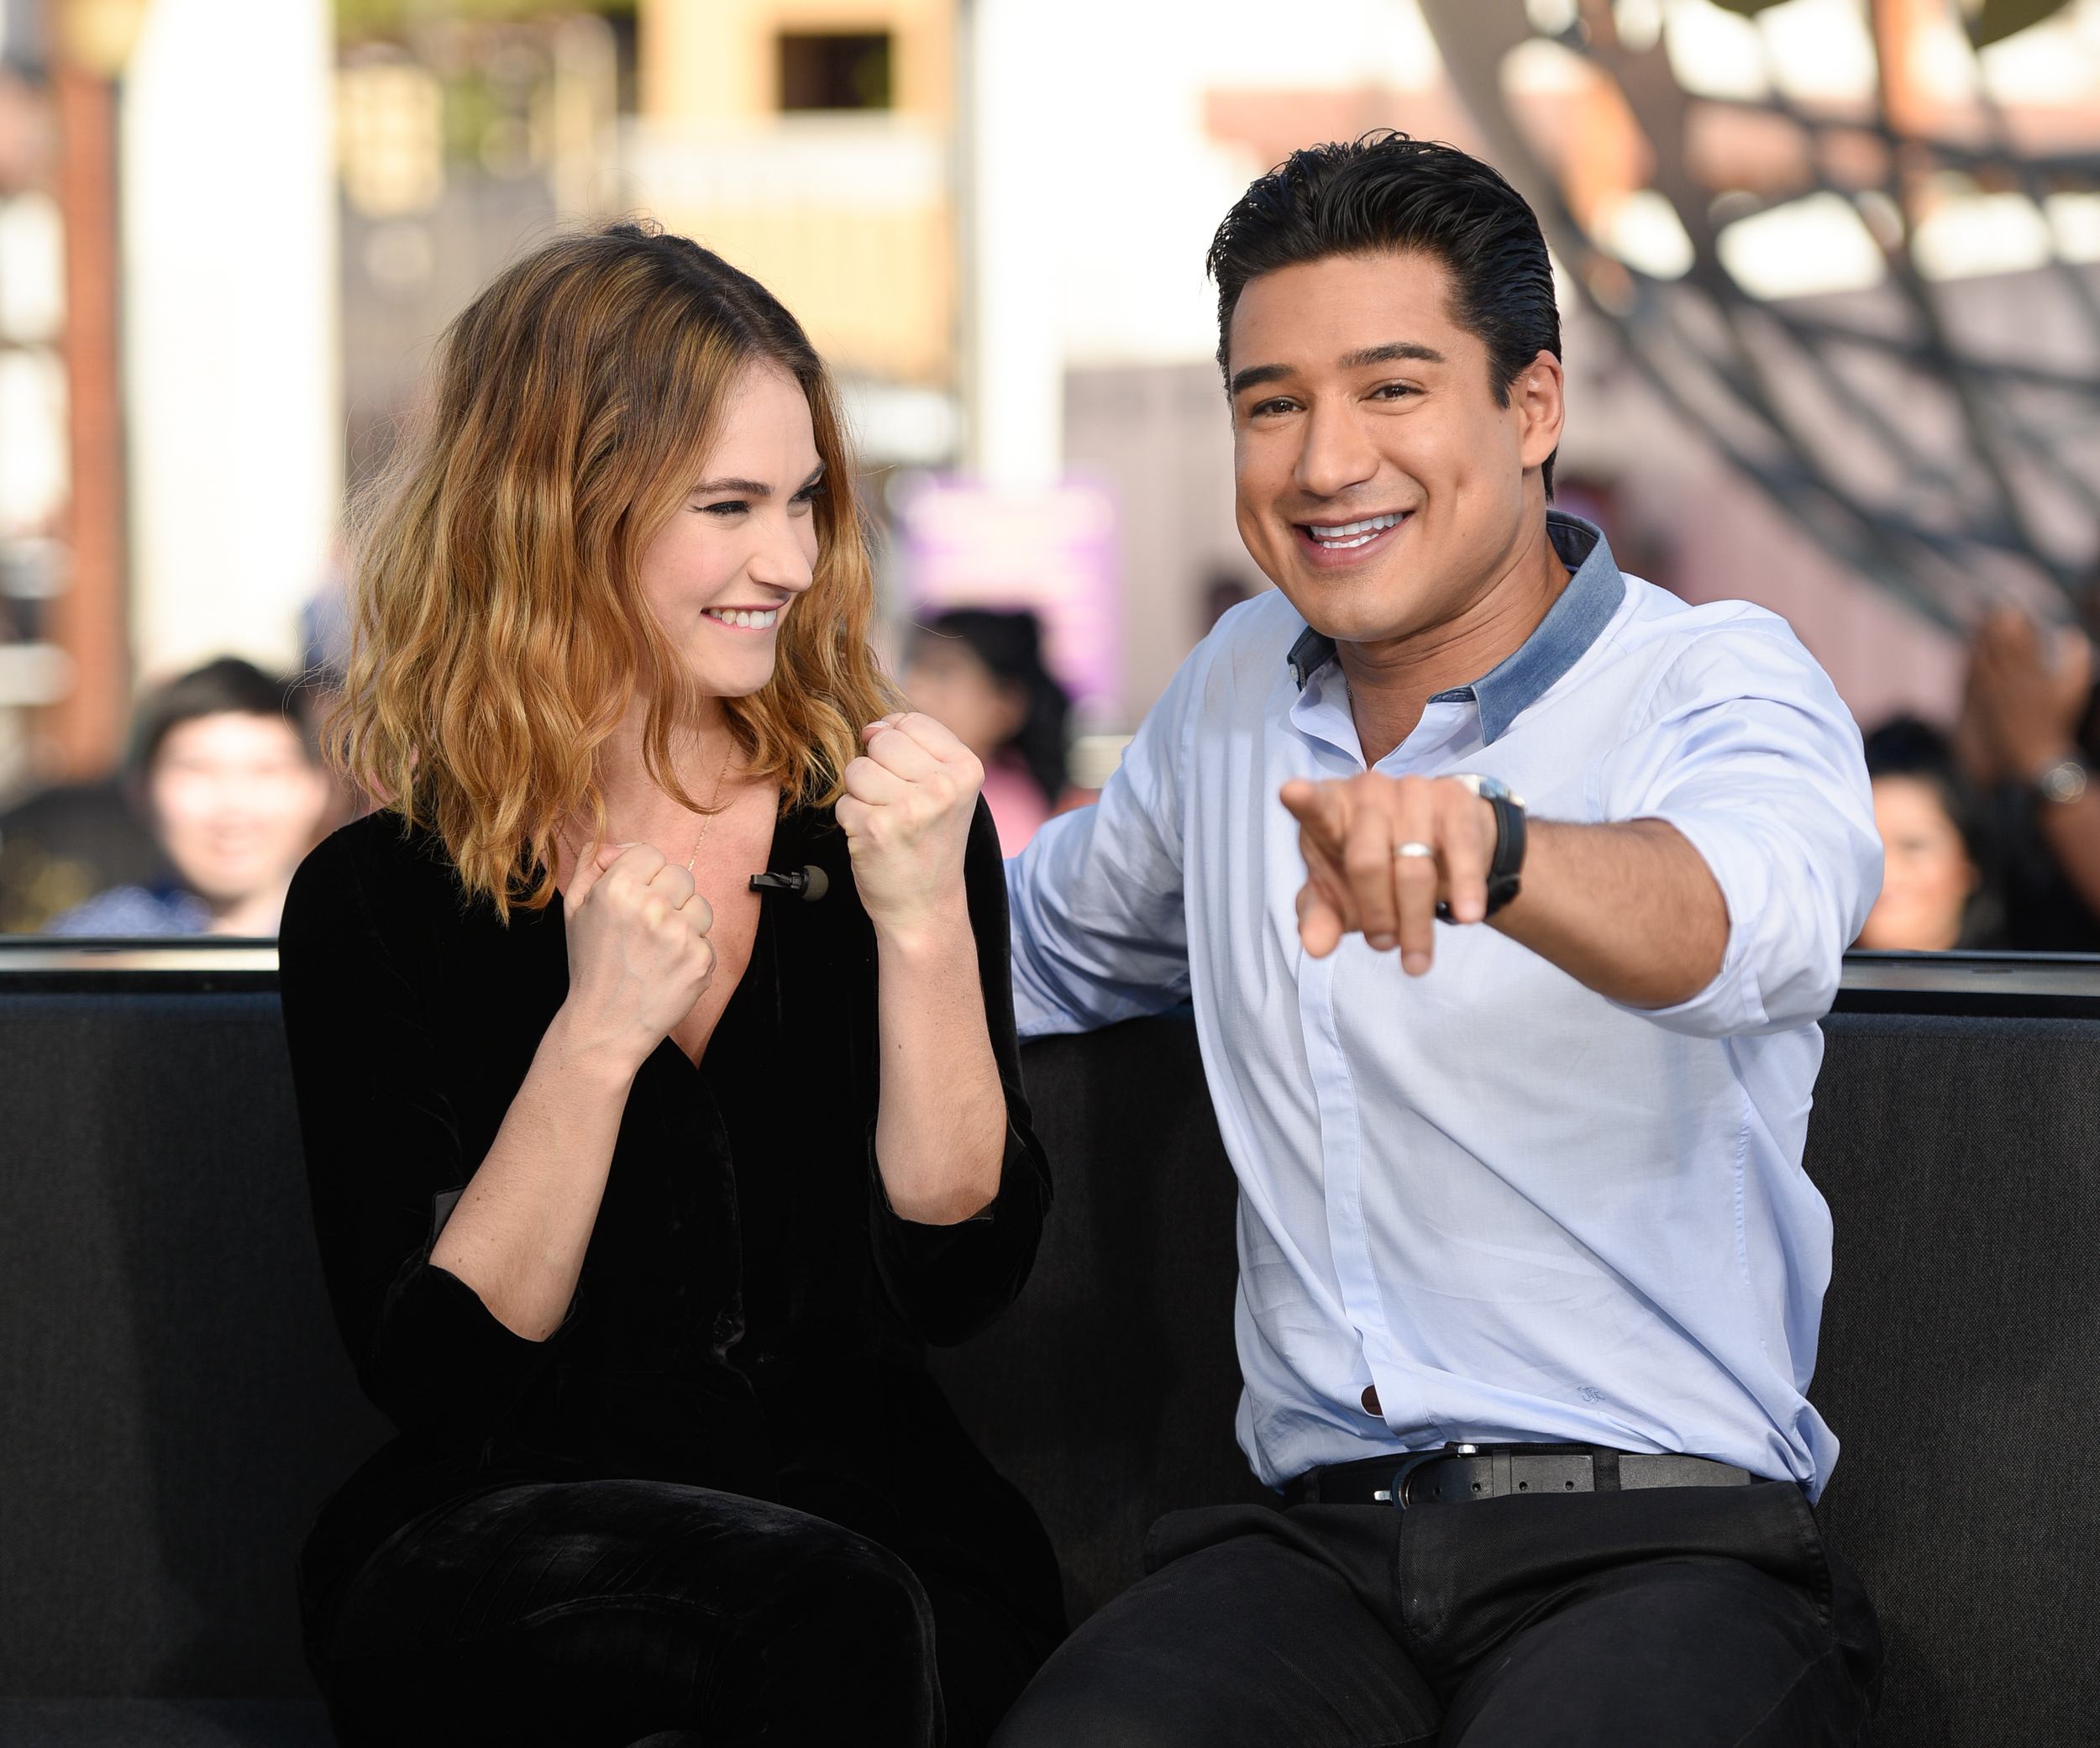 Mario Lopez: Its dangerous for parents to support